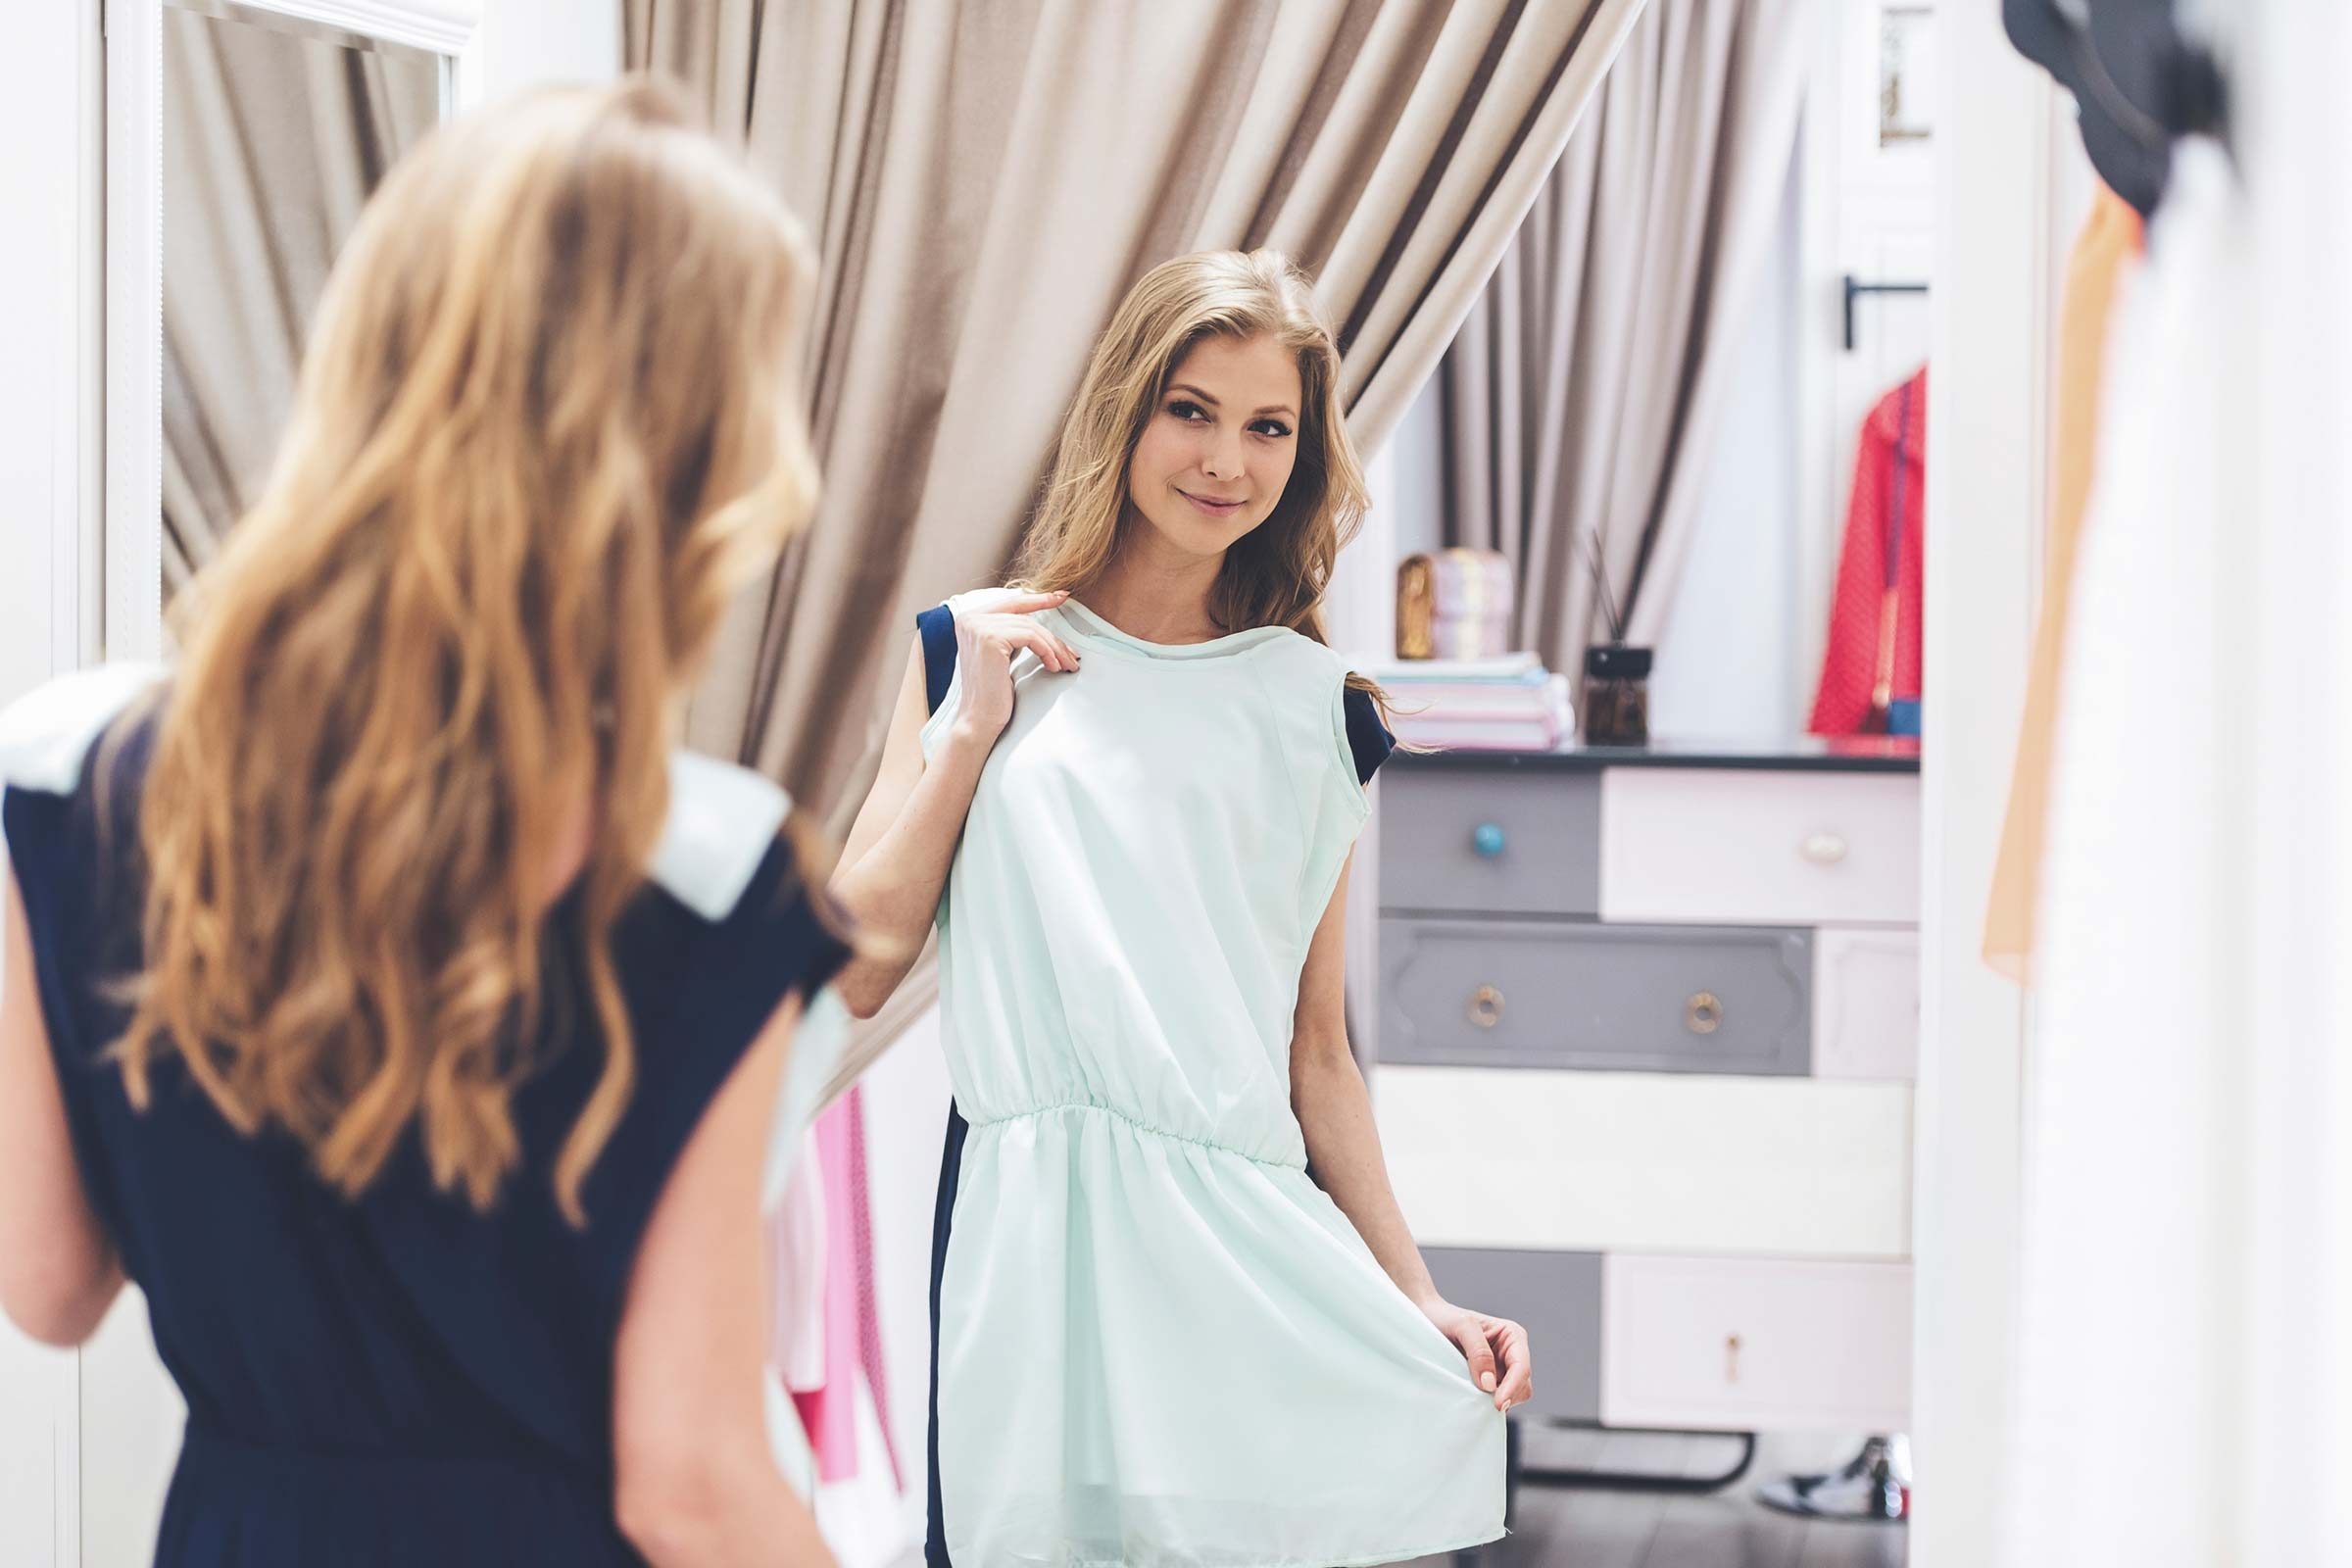 How to tie a beautiful belt on the dress: tips for the stylist